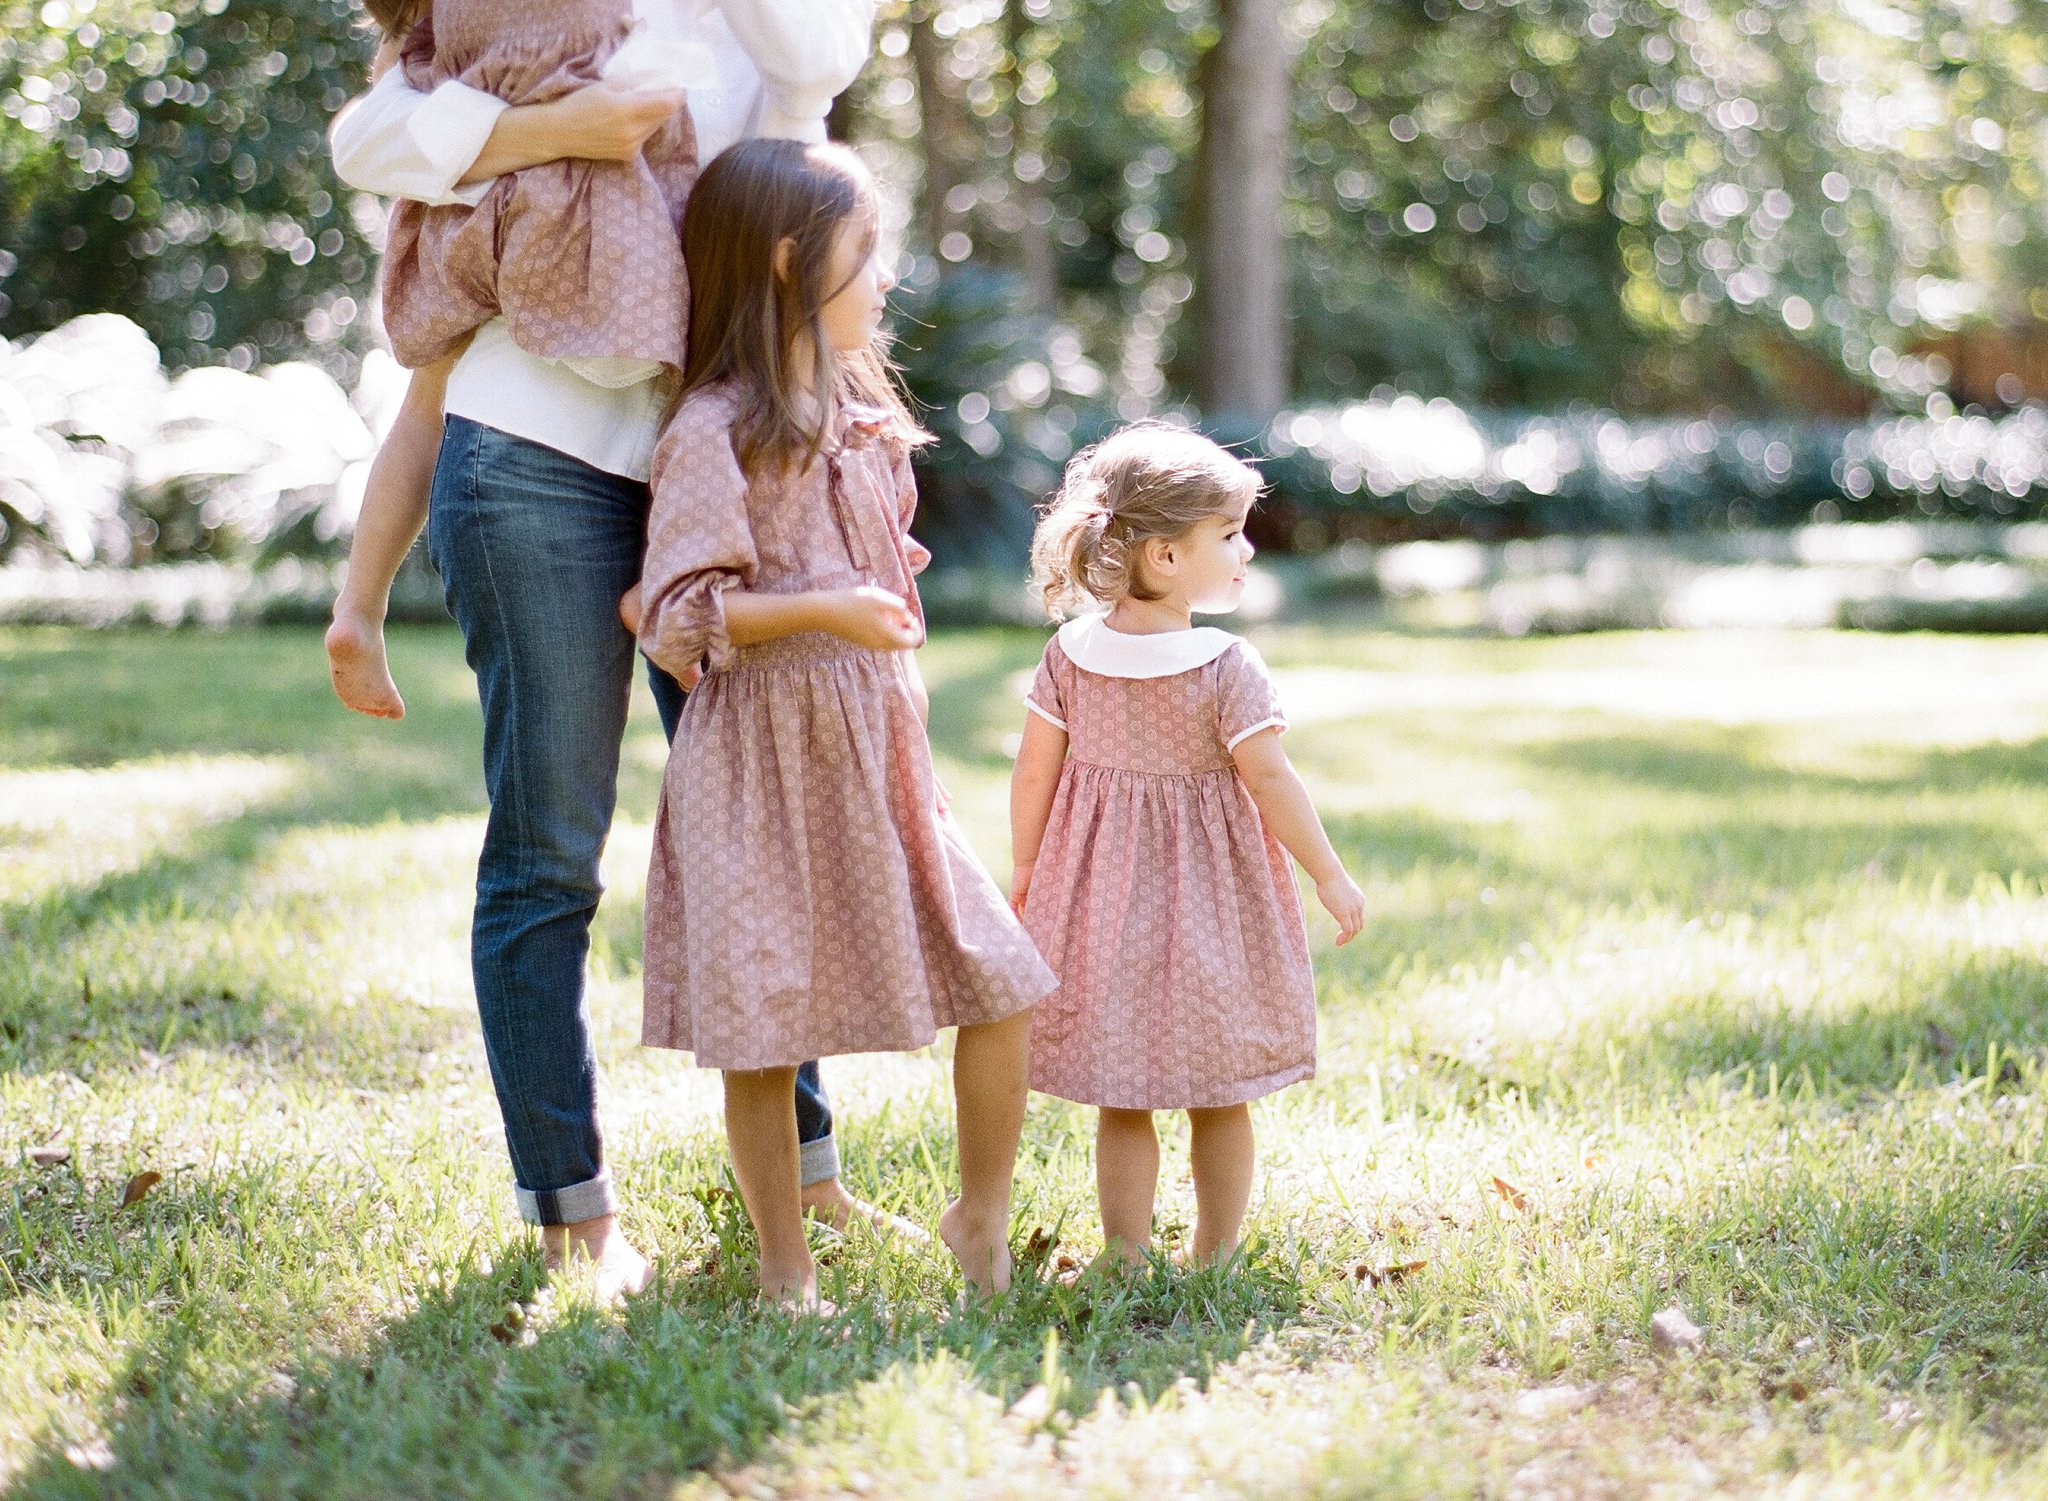 tallahassee family photographer shannon griffin photography_0036.jpg